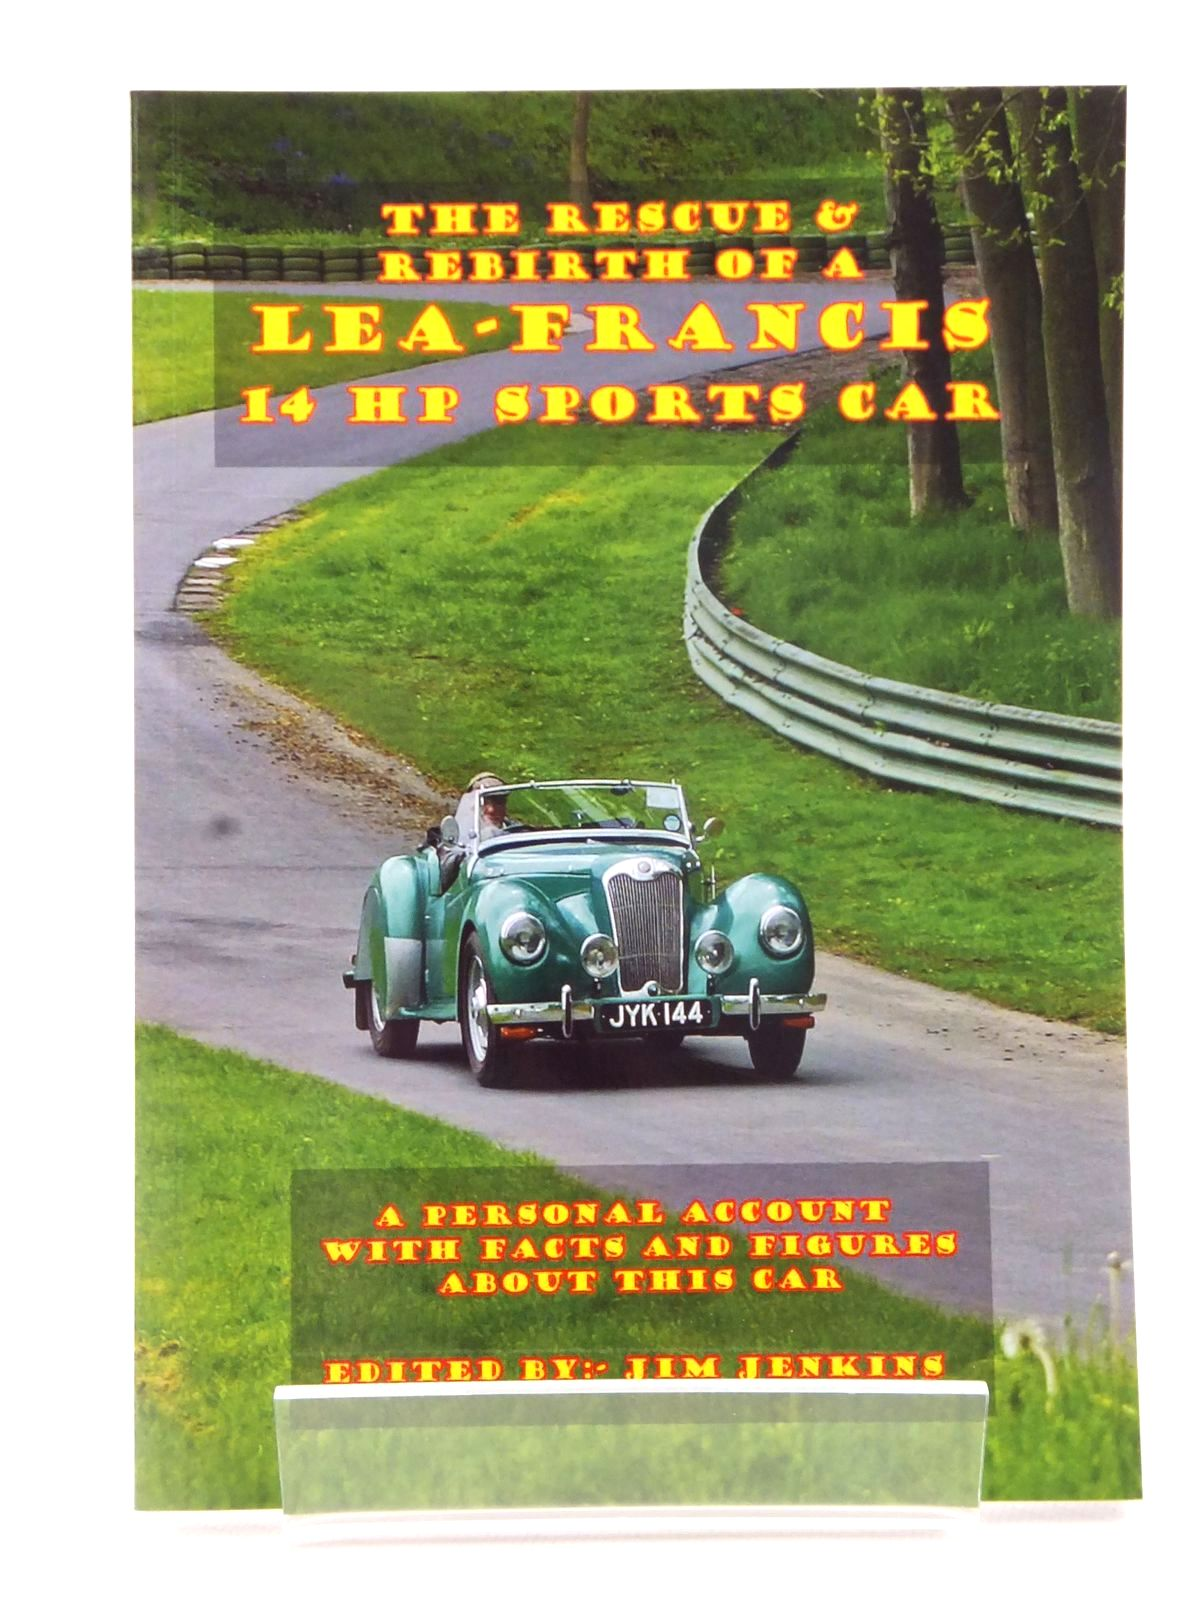 Photo of THE RESCUE & REBIRTH OF A LEA-FRANCIS 14 HP SPORTS CAR written by Jenkins, Jim published by Jim Jenkins (STOCK CODE: 1608939)  for sale by Stella & Rose's Books